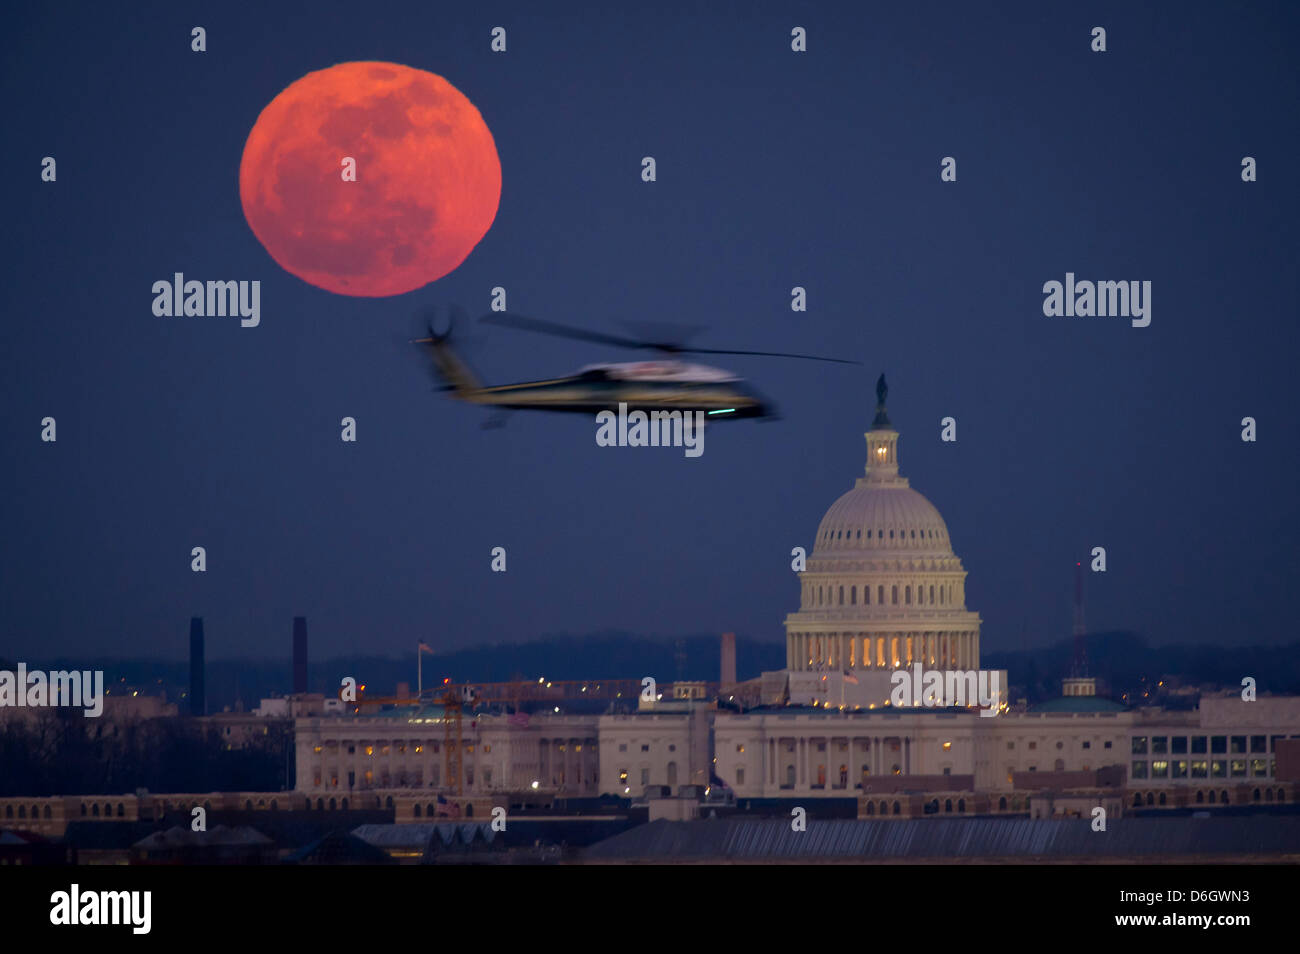 HANDOUT - A NASA handout picture dated 07 February 2012 shows the full moon and the U.S. Capitol early in the evening - Stock Image